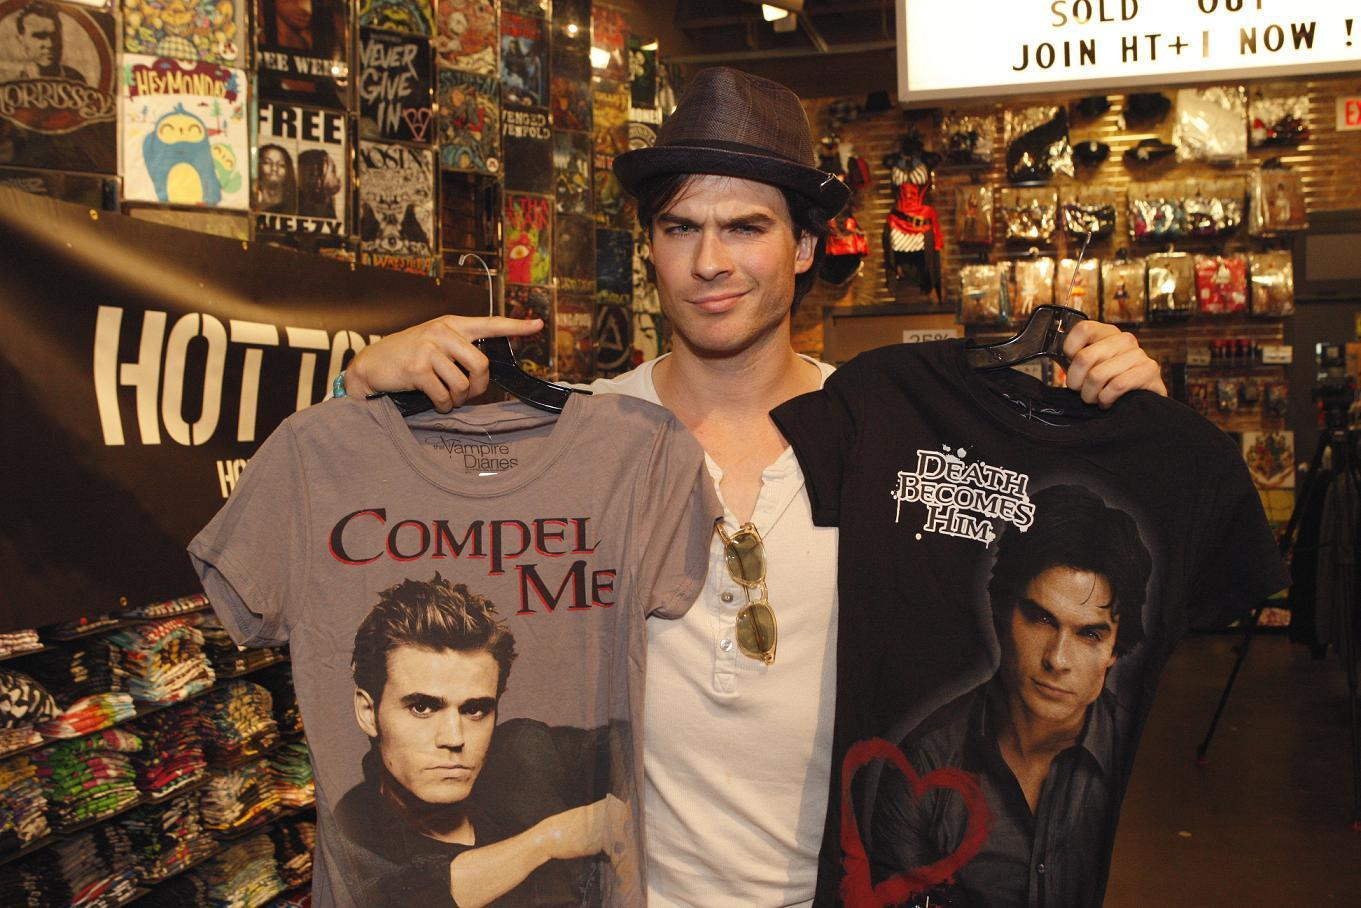 http://images4.fanpop.com/image/photos/16200000/Hot-Topic-Tour-in-Texas-the-vampire-diaries-16246873-1361-908.jpg